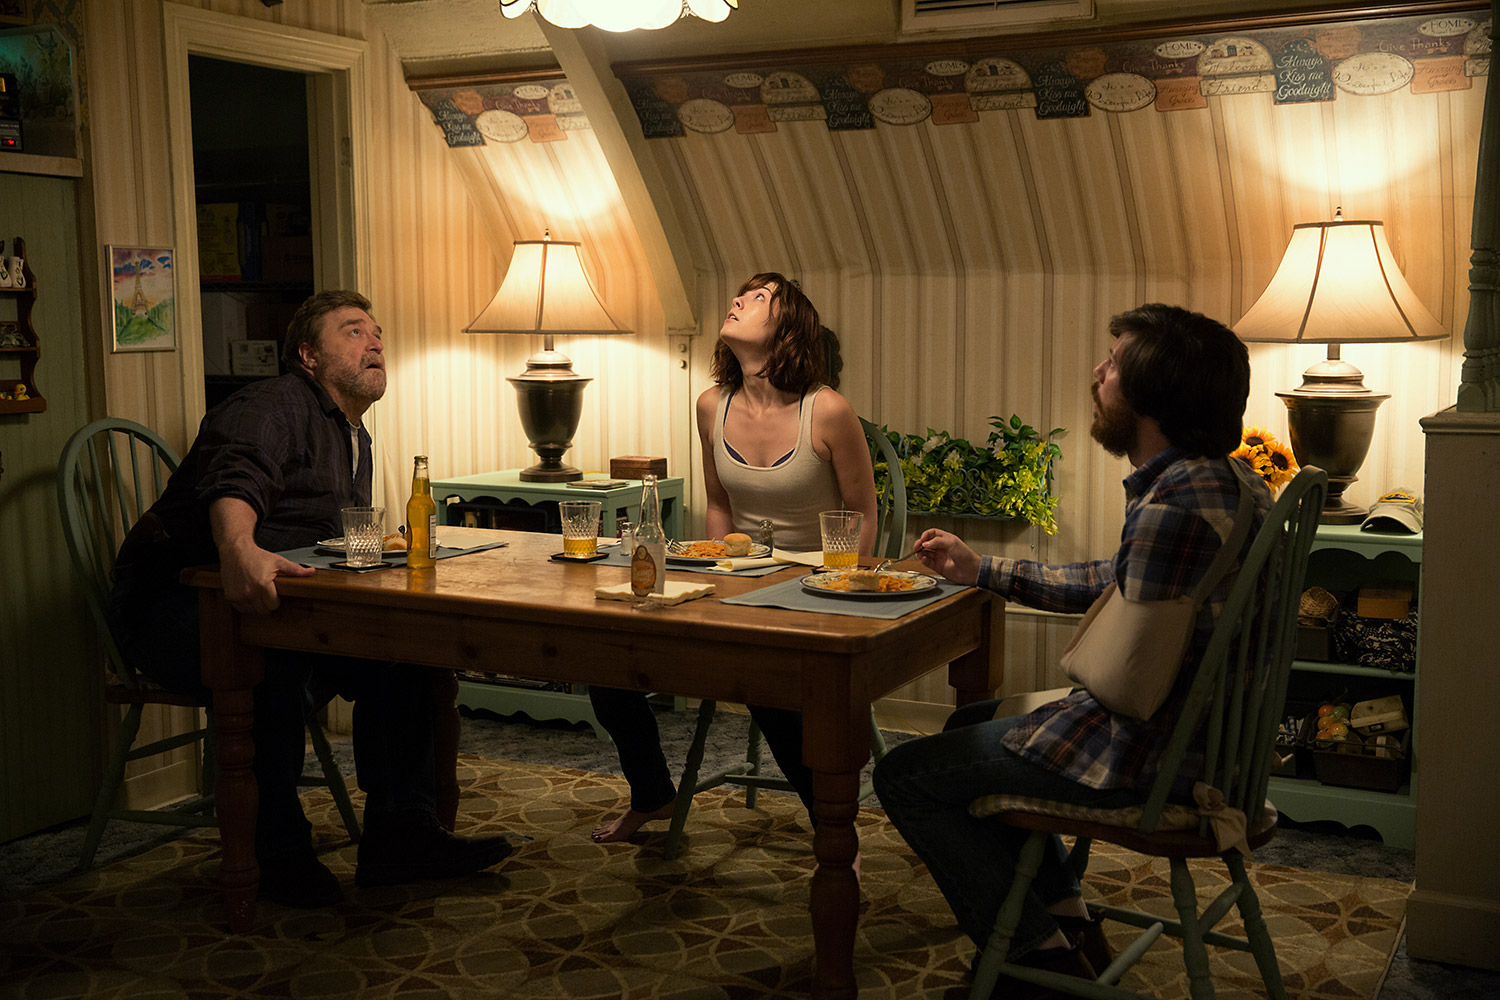 Post-Apocalyptic Movies - 10 Cloverfield Lane, characters at the table